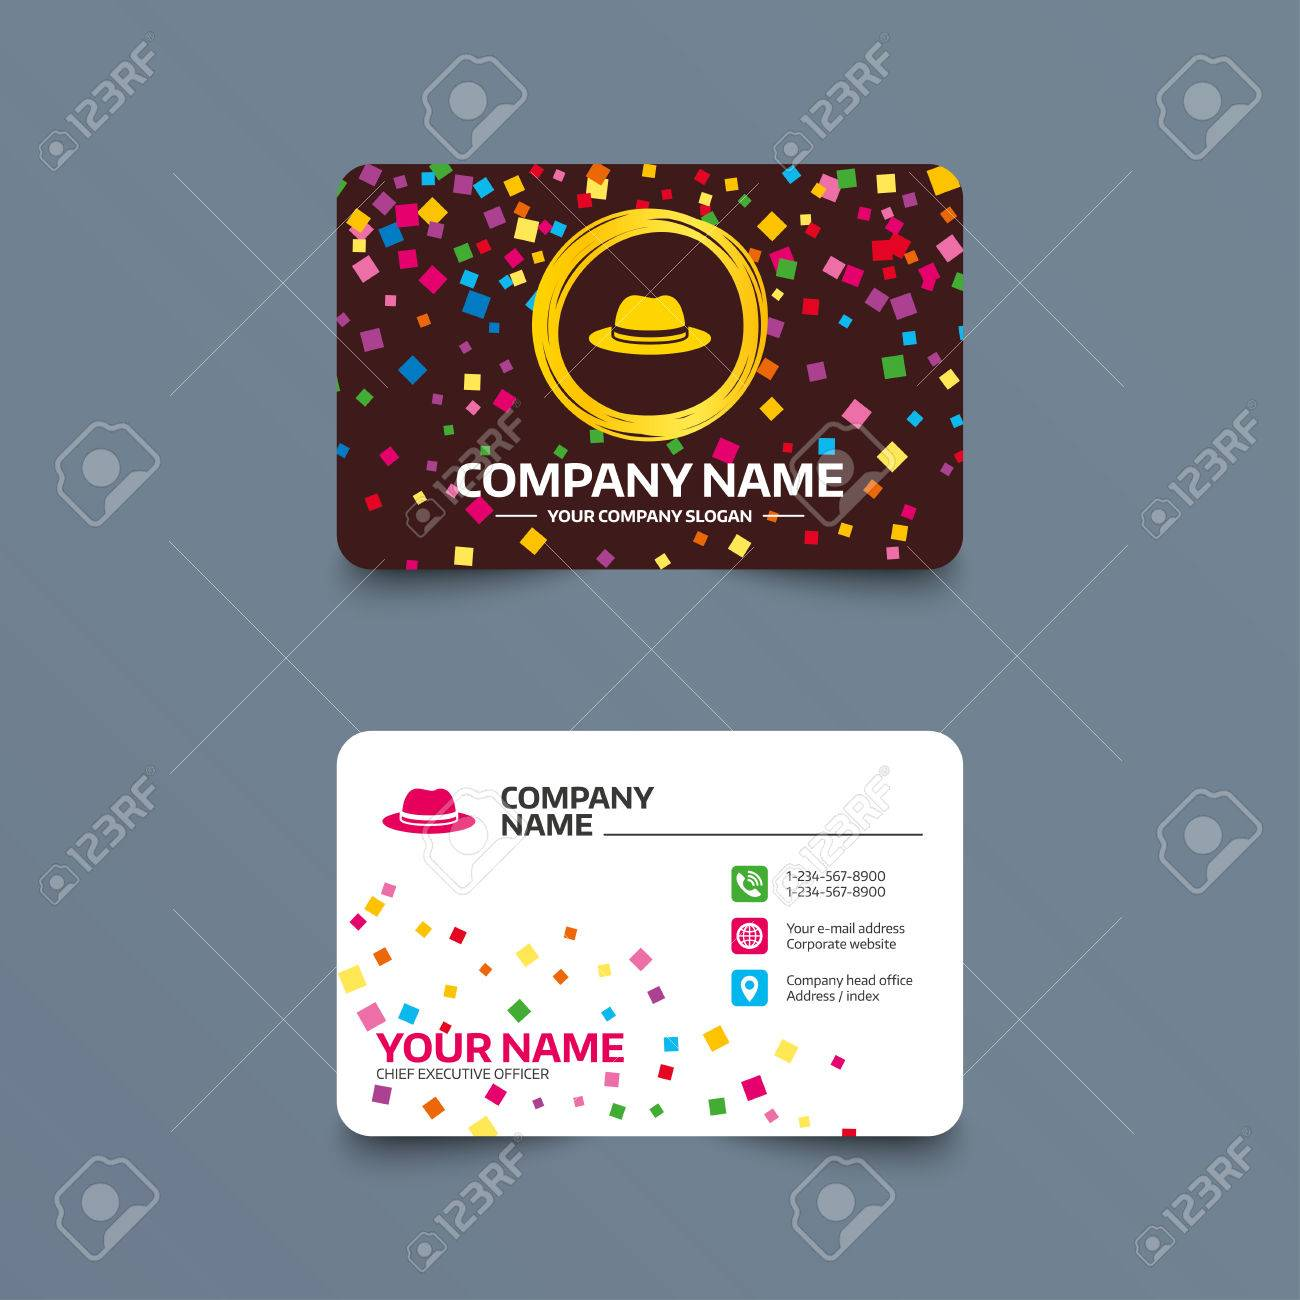 Business card template with confetti pieces top hat sign icon business card template with confetti pieces top hat sign icon classic headdress symbol magicingreecefo Gallery